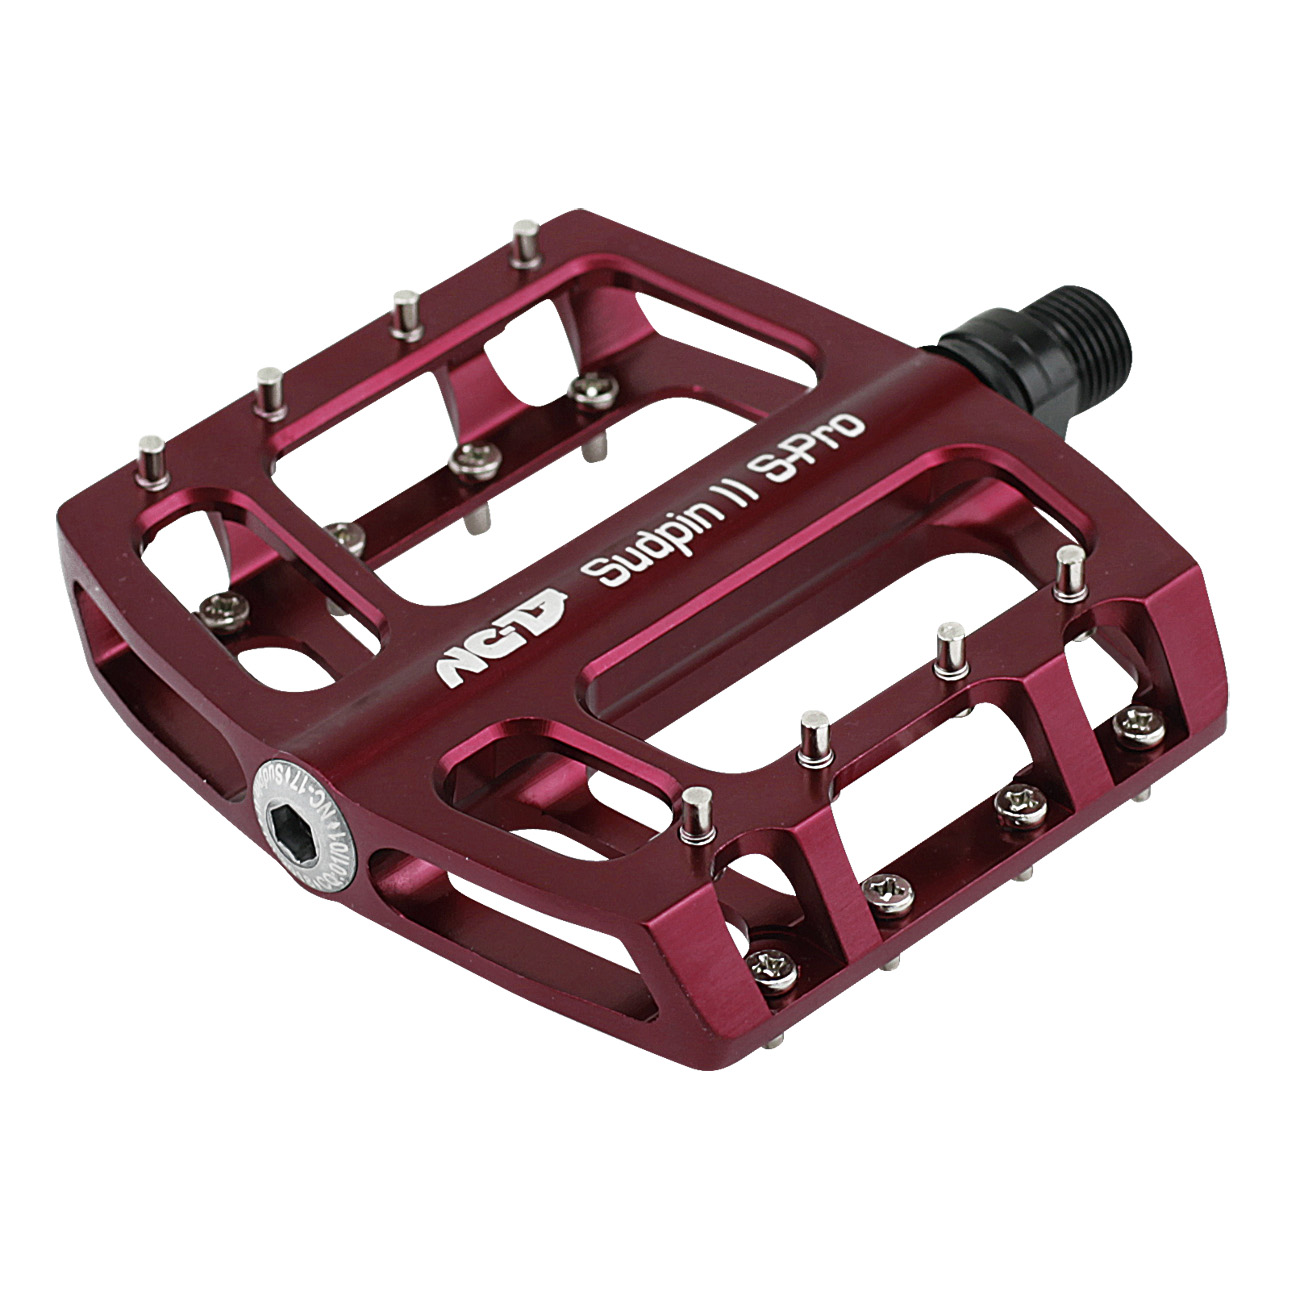 NC-17 Sudpin II S-Pro CNC<br/>Pedal, rot, Präzisionslager<br/>